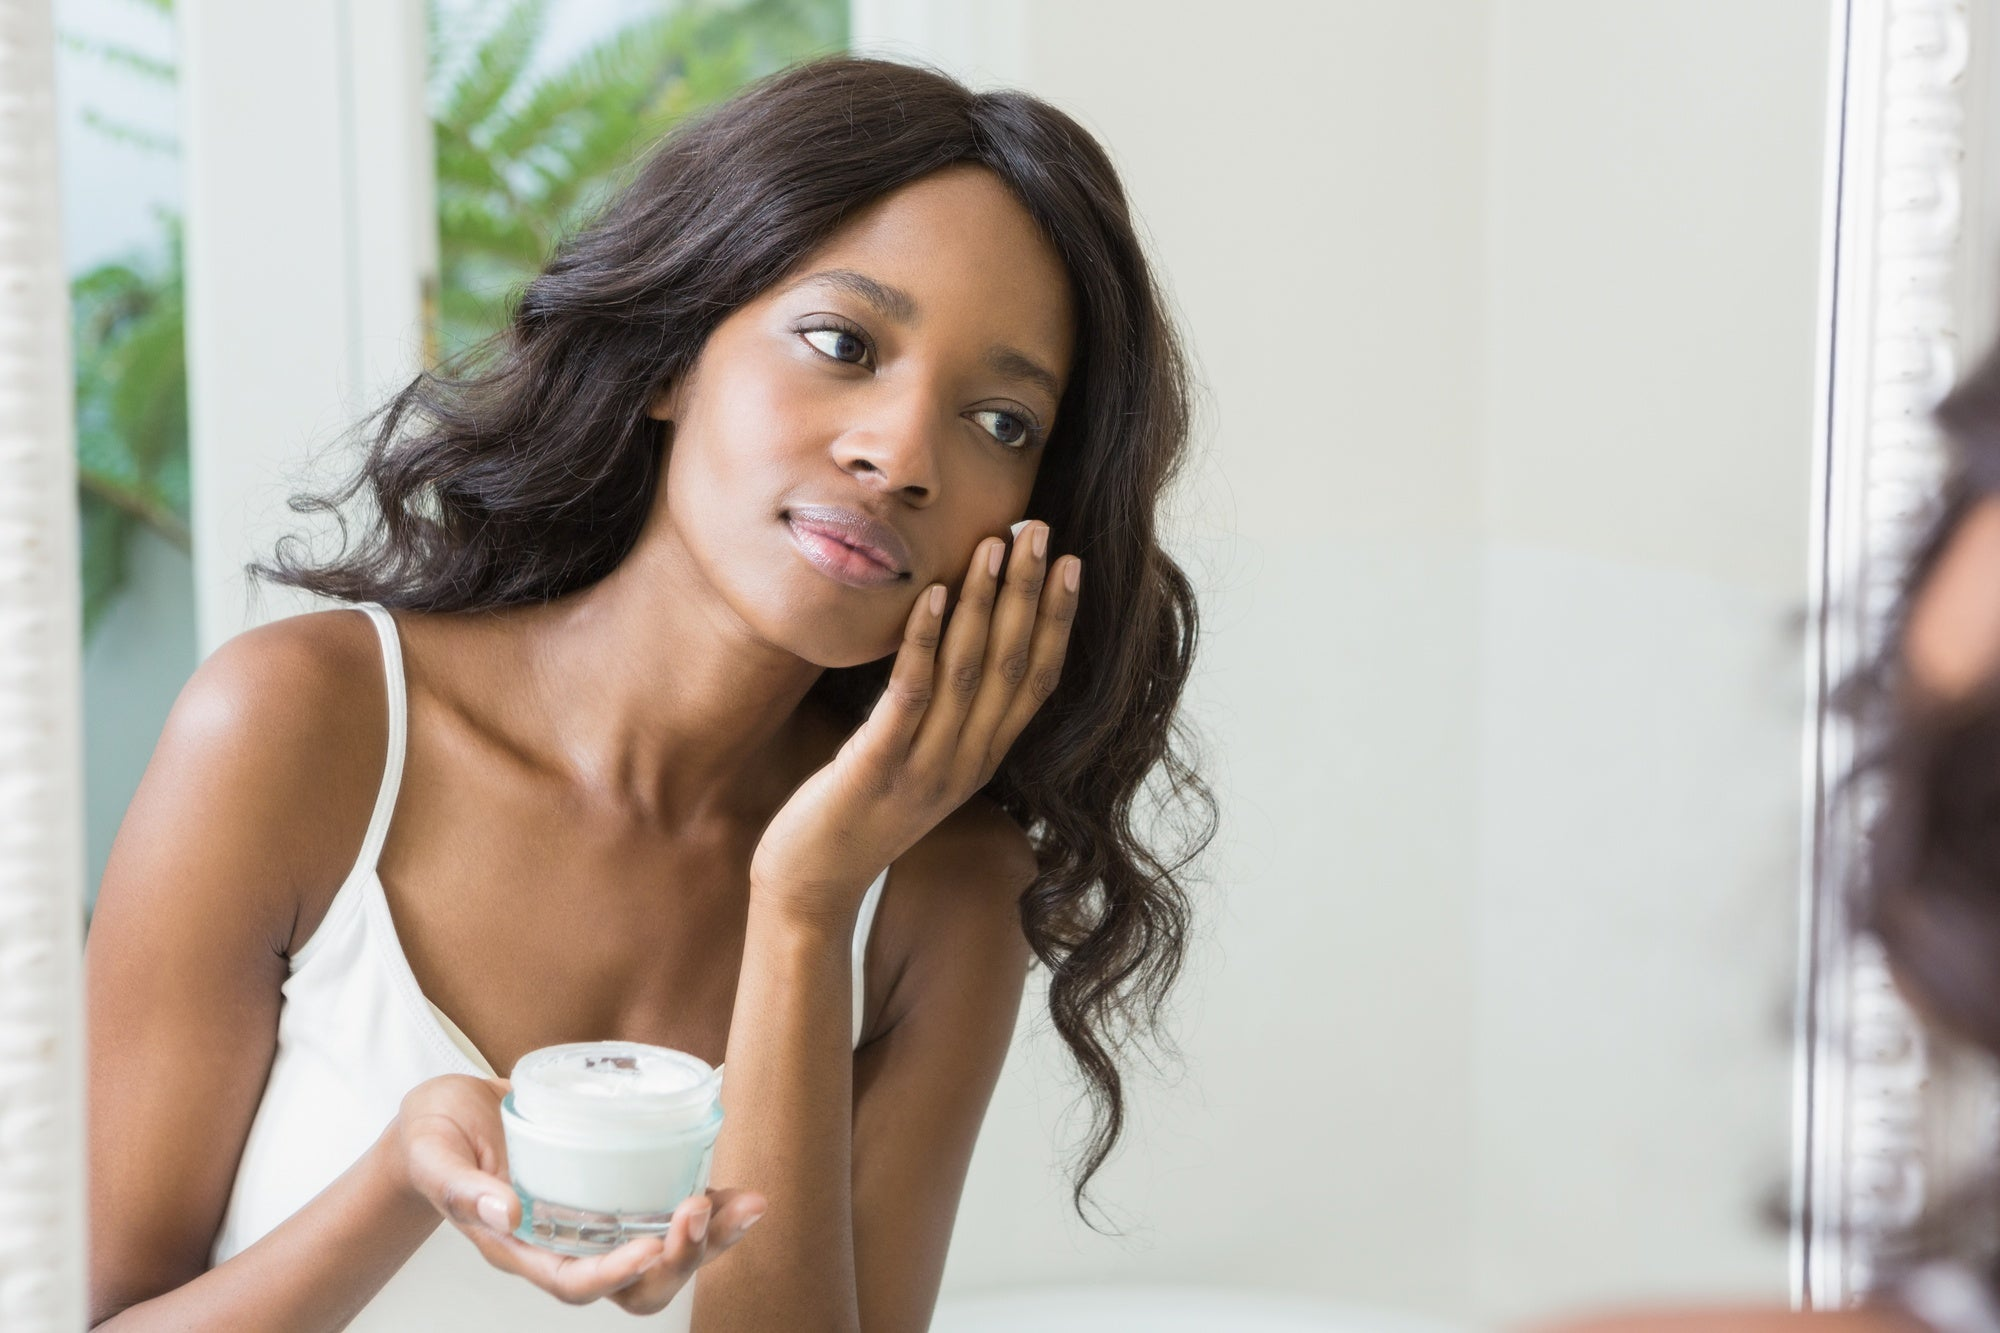 Black Skin Care: How to Care for the Darker Skin Tones